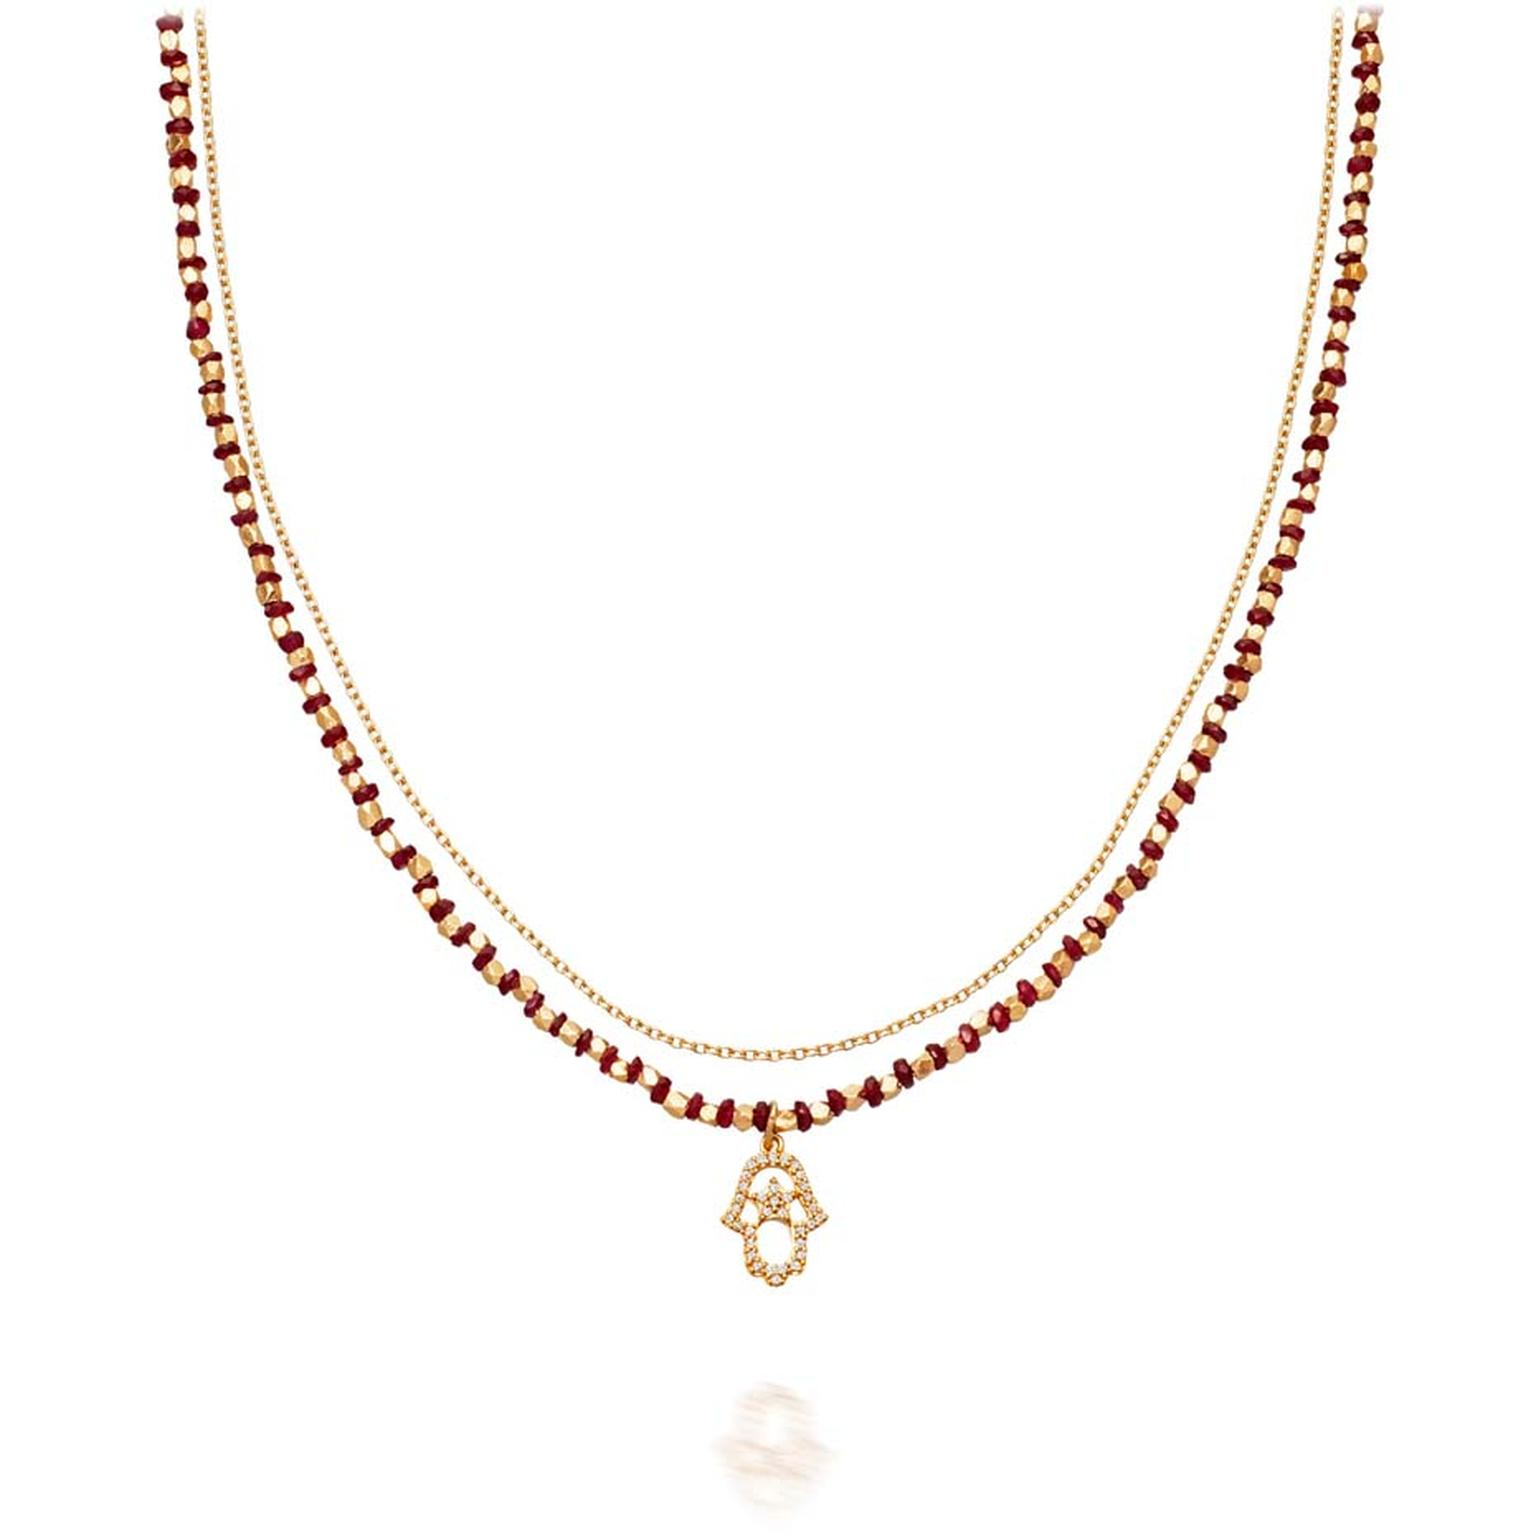 14ct yellow gold and ruby Hamsa necklace from Astley Clarke's fine biography collection.